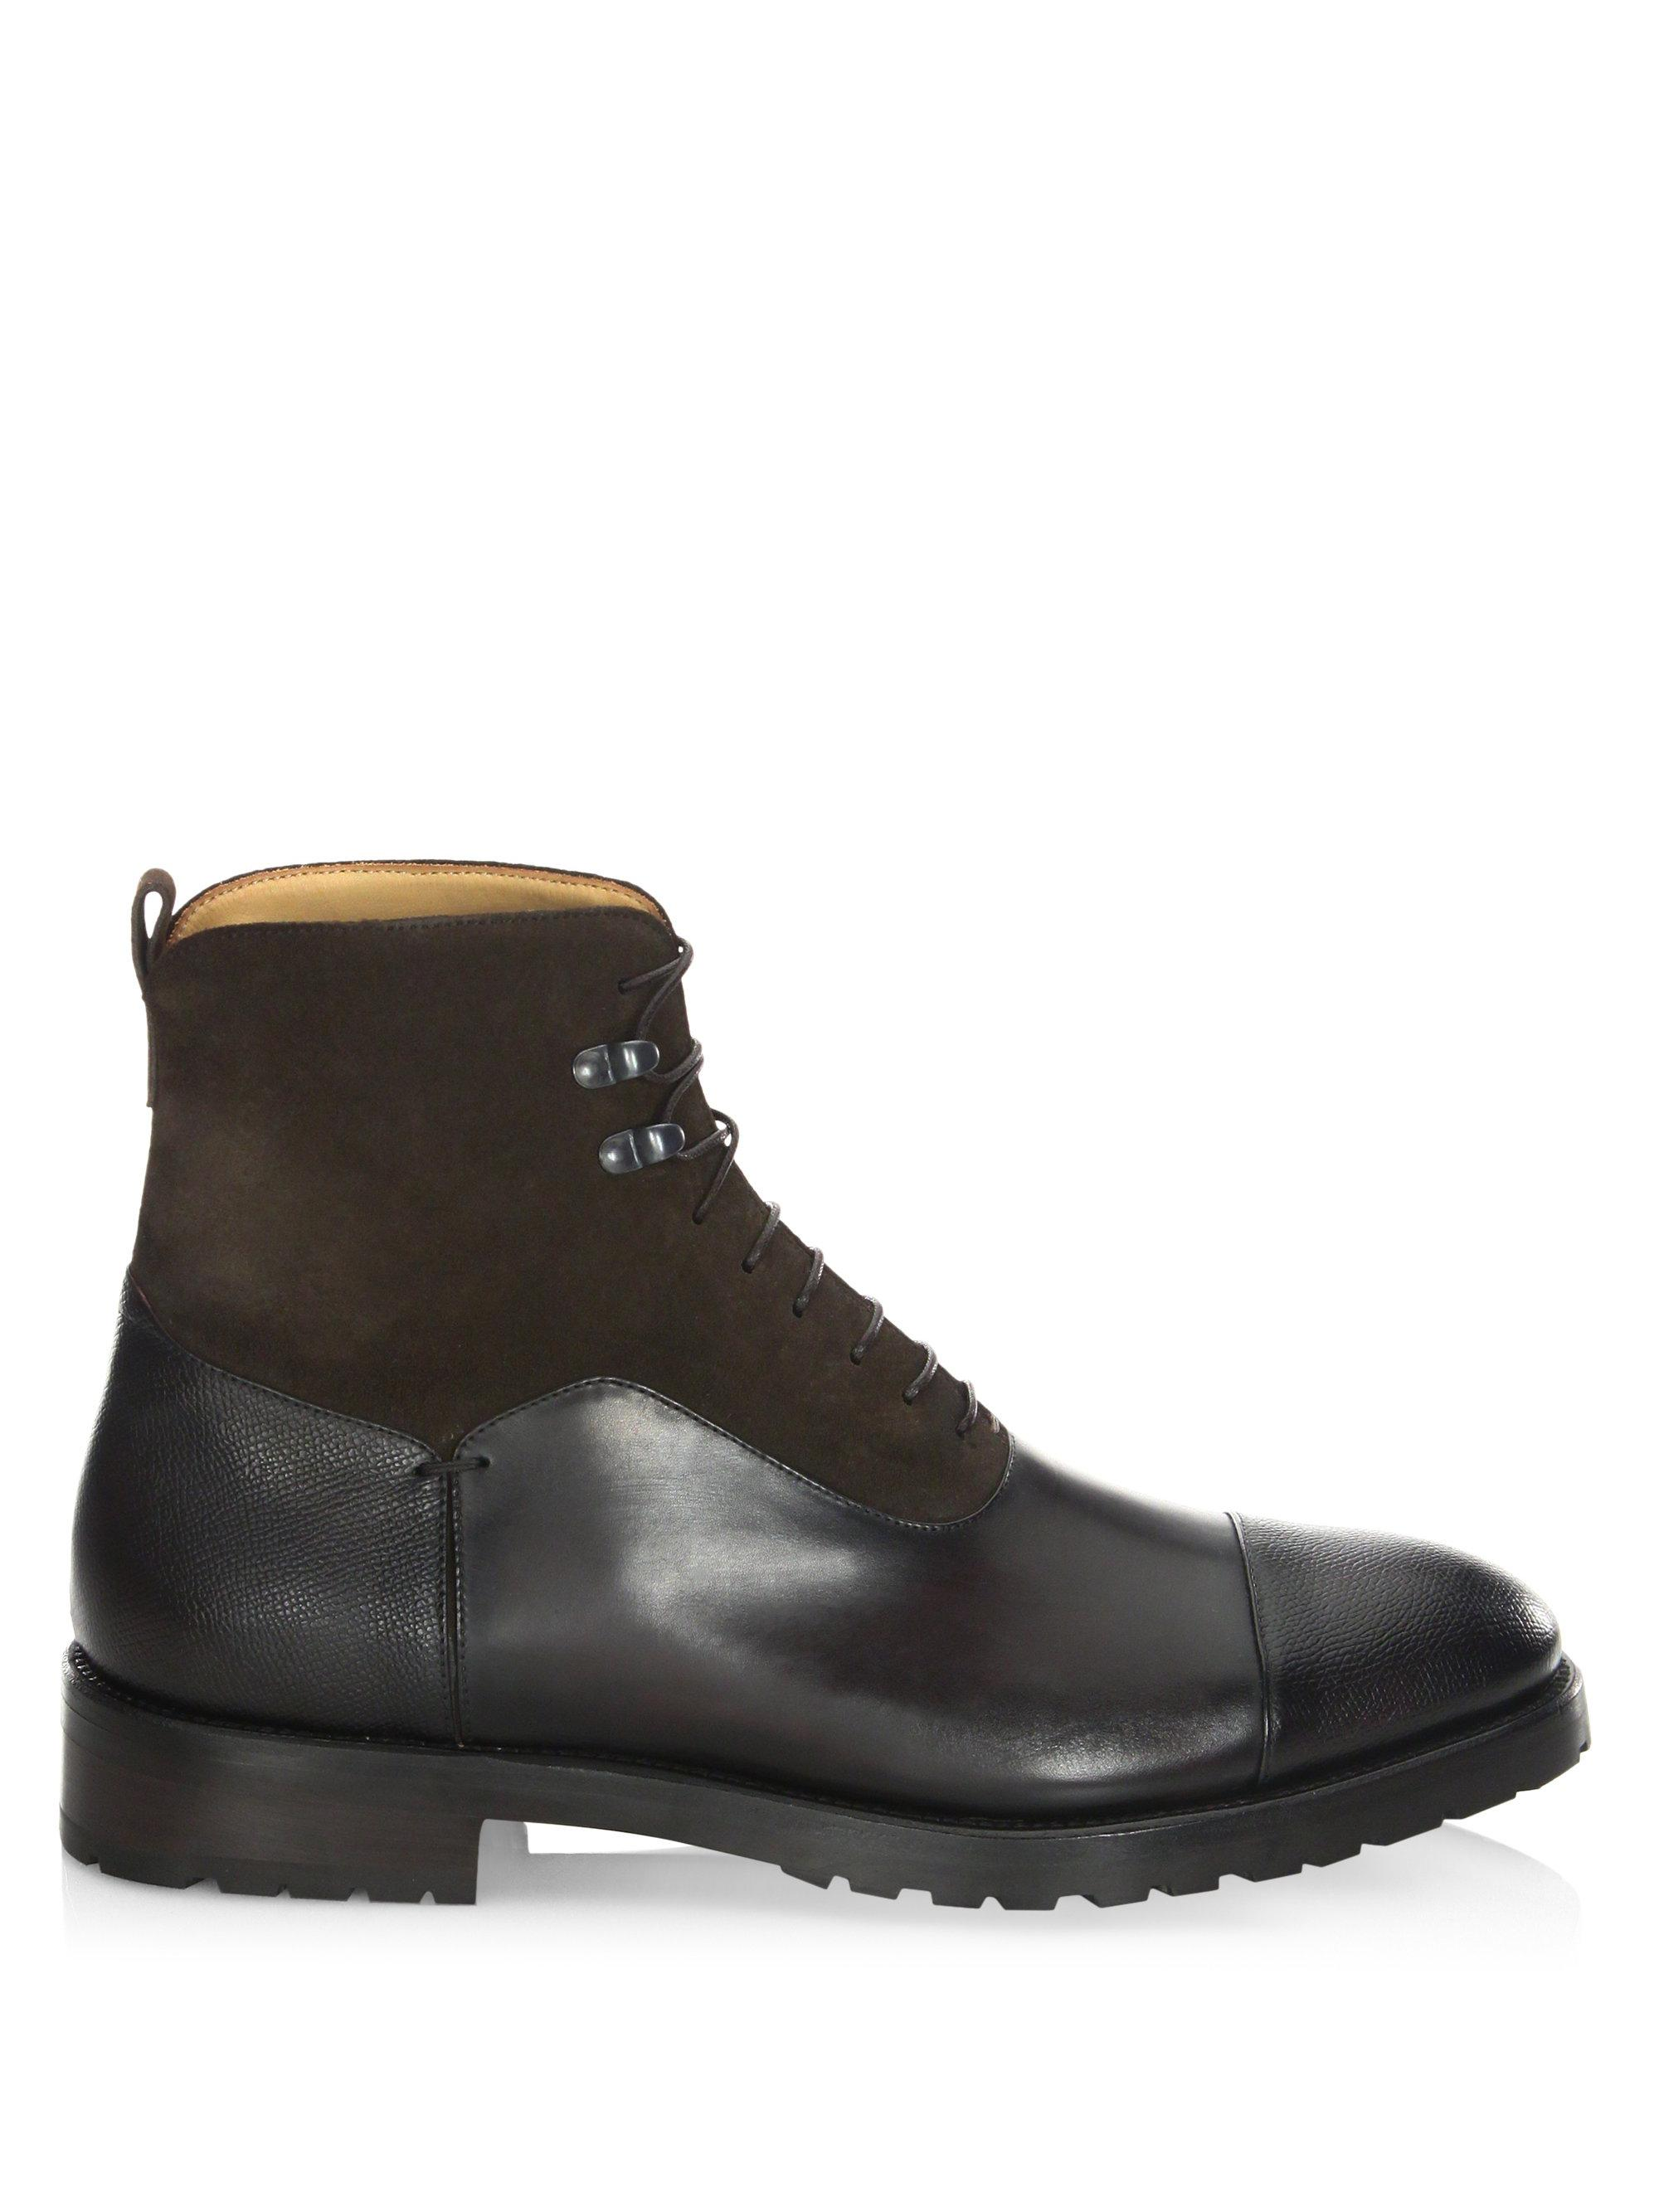 SUTOR MANTELLASSI Stark Parigi Leather Boots CSJcKMq